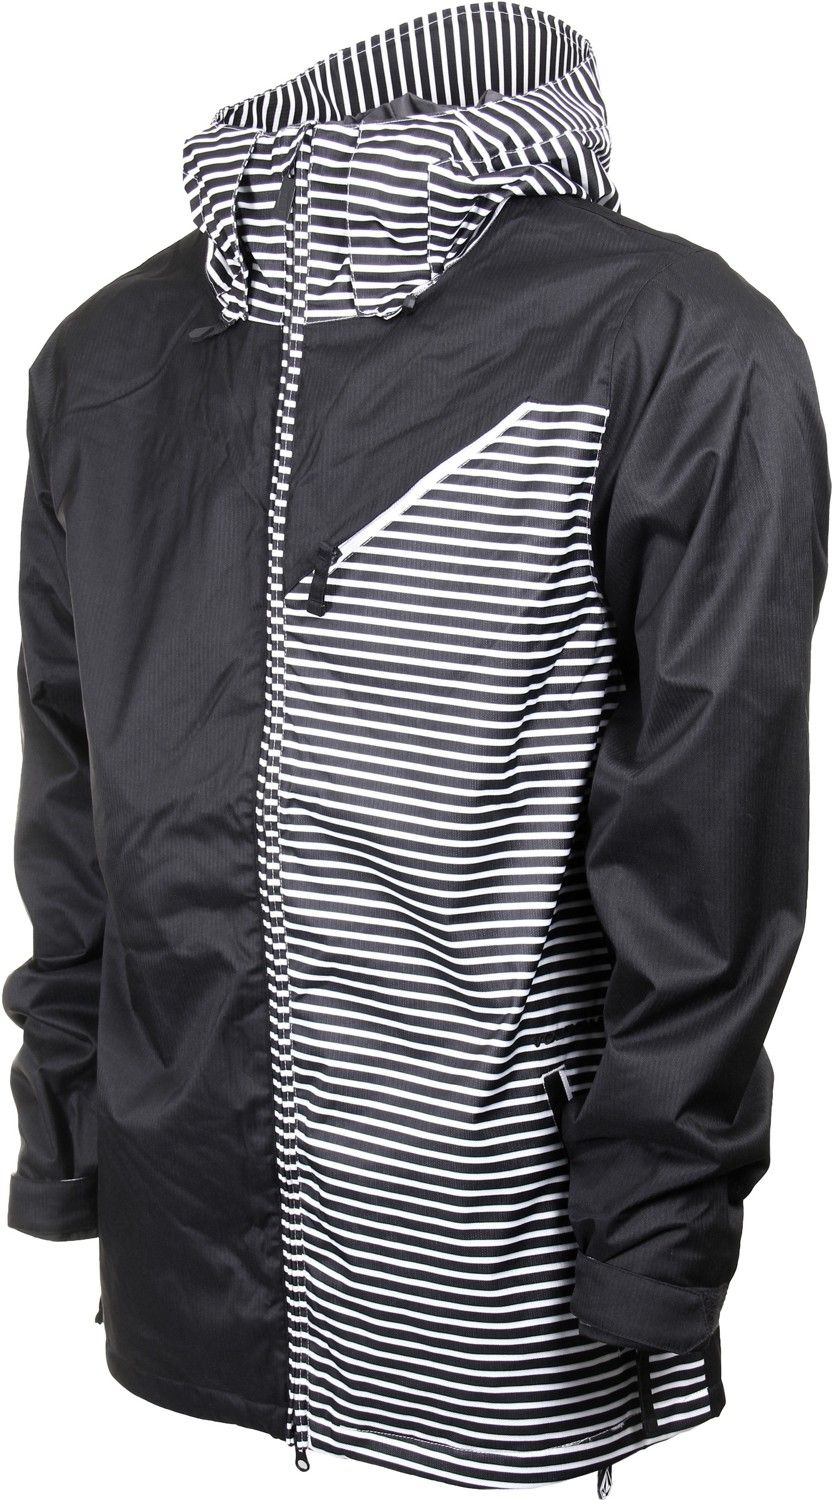 Billabong mens ski jackets black